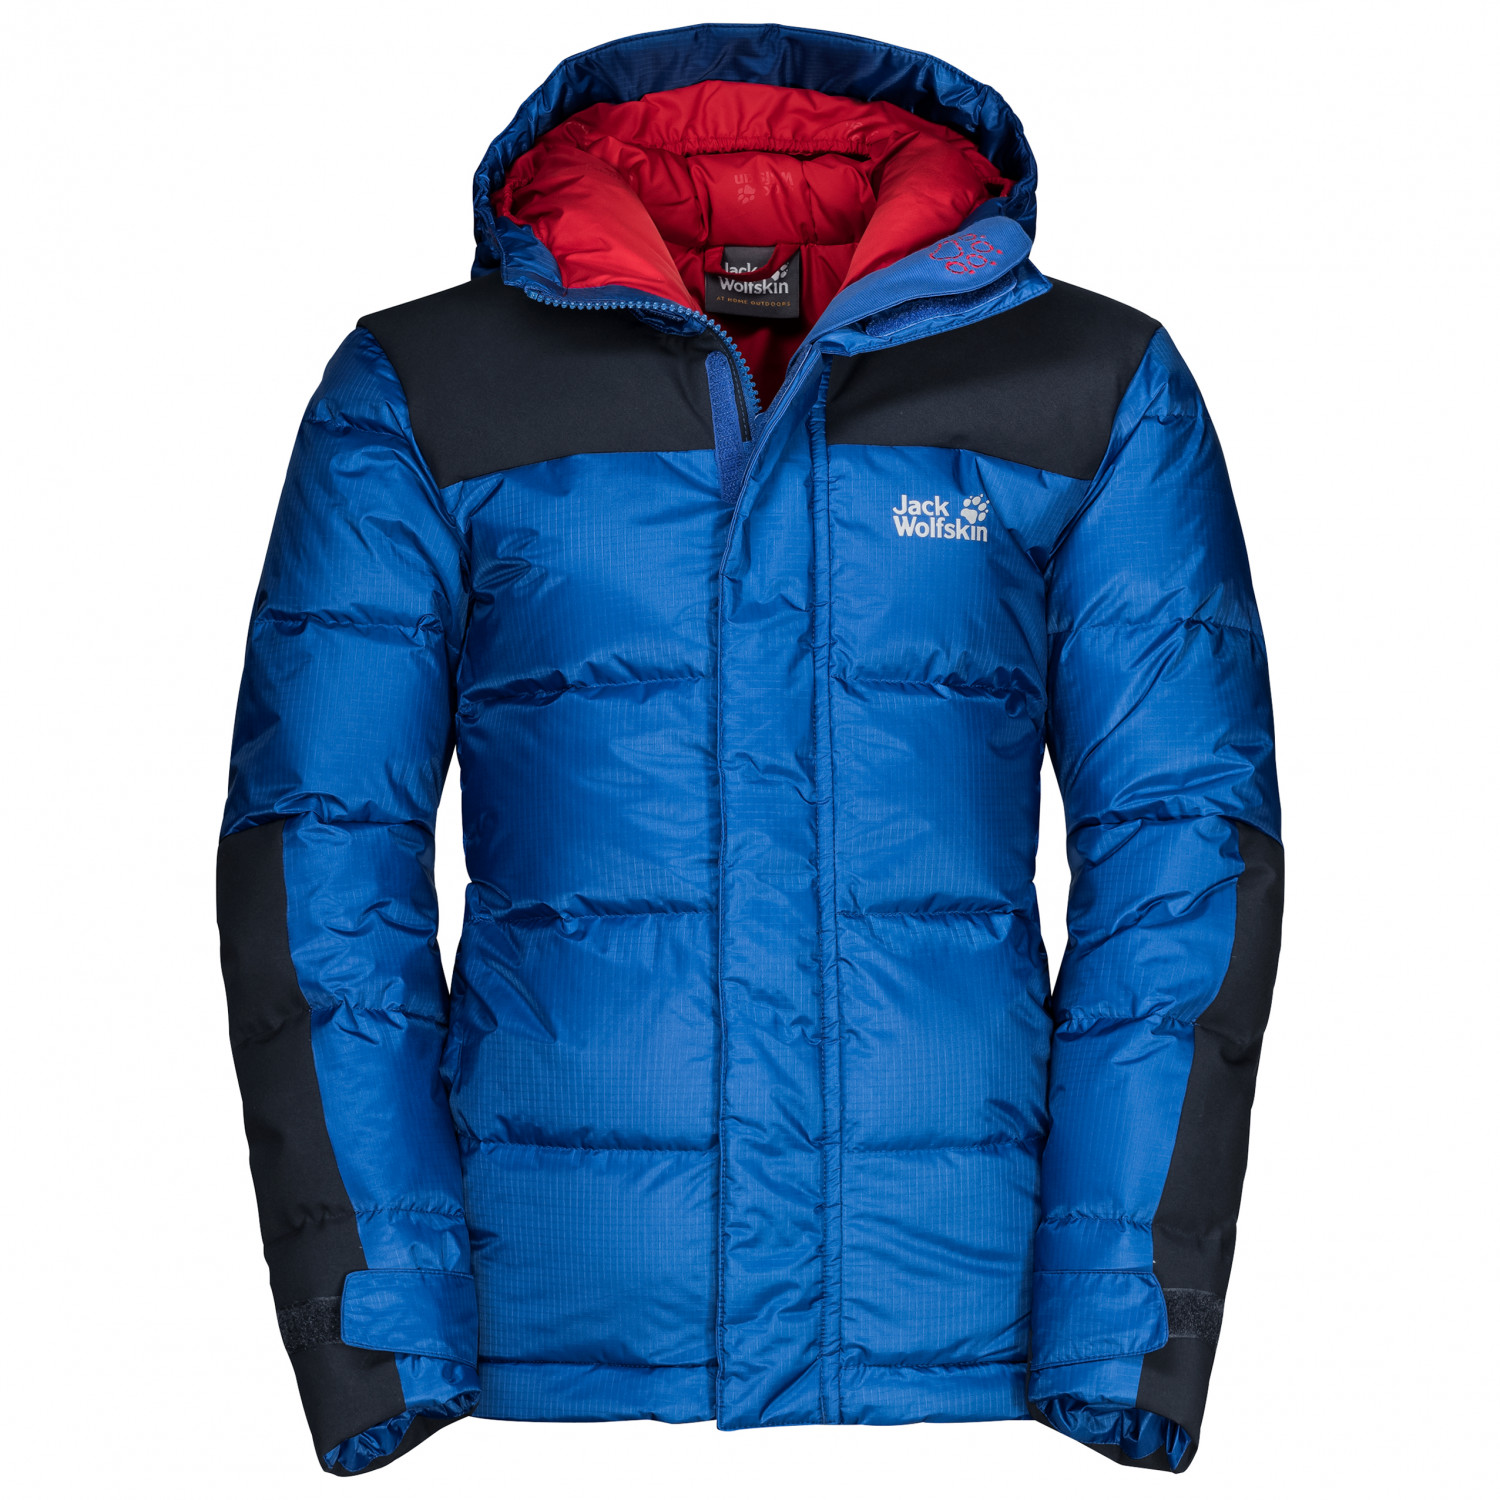 separation shoes fdb81 0ff01 Jack Wolfskin Mount Cook Jacket - Giacca in piumino Bambini ...